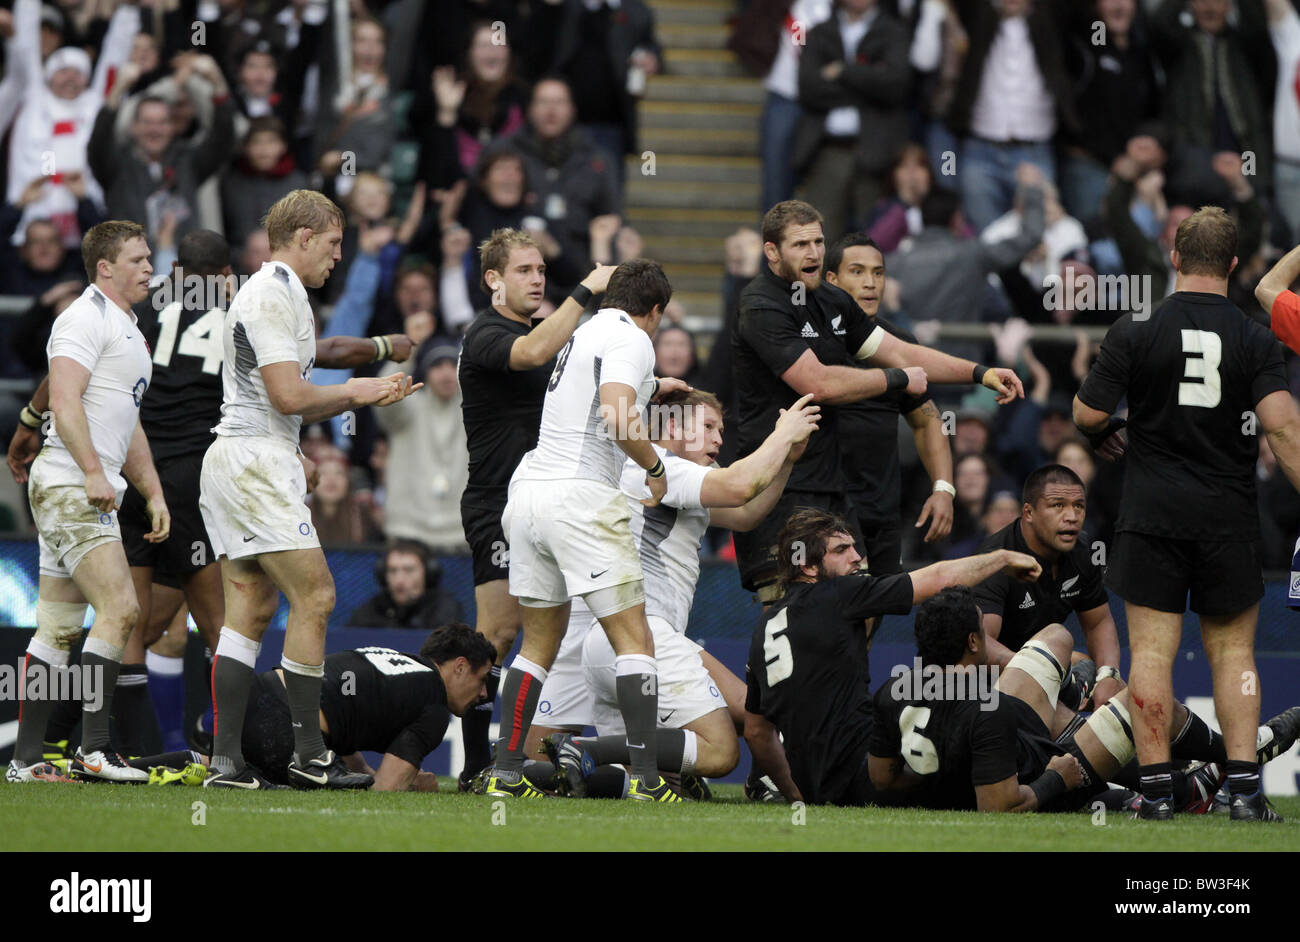 DYLAN HARTLEY TOUCHES DOWN ENGLAND V NEW ZEALAND RU TWICKENHAM MIDDLESEX ENGLAND 06 November 2010 - Stock Image